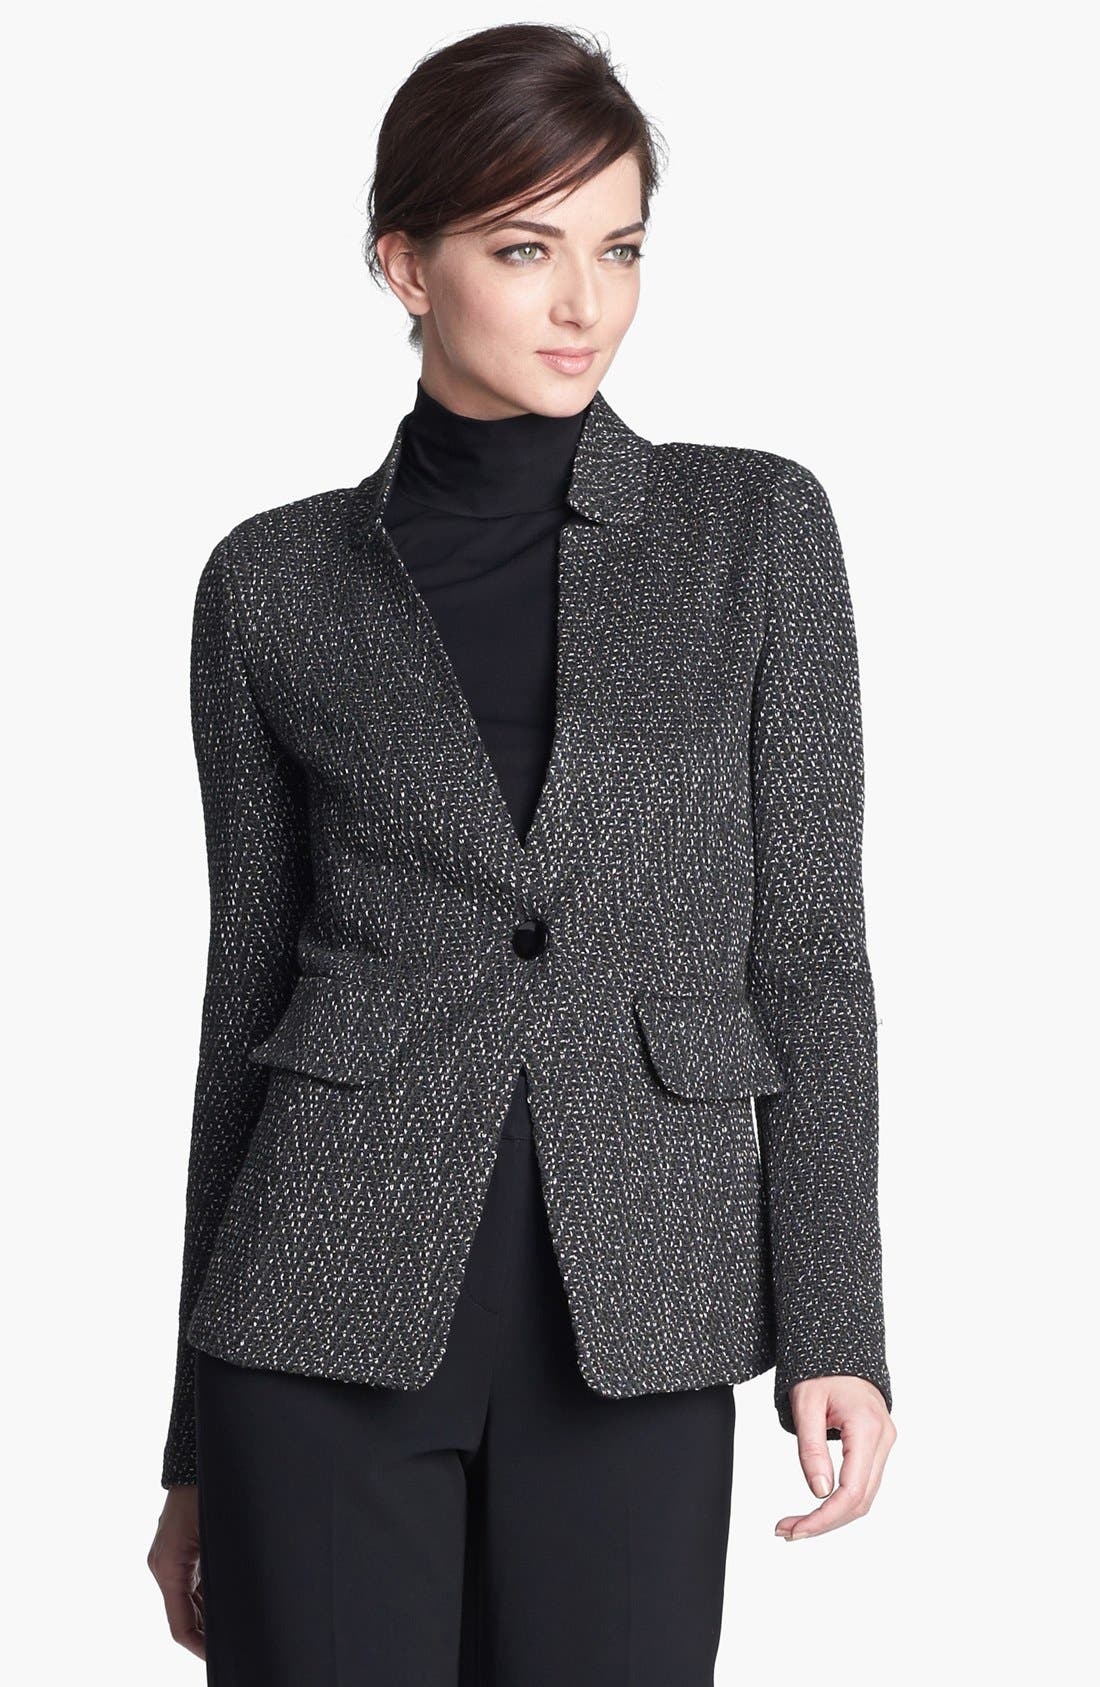 Main Image - St. John Collection Donegal Chevron Tweed Knit Jacket